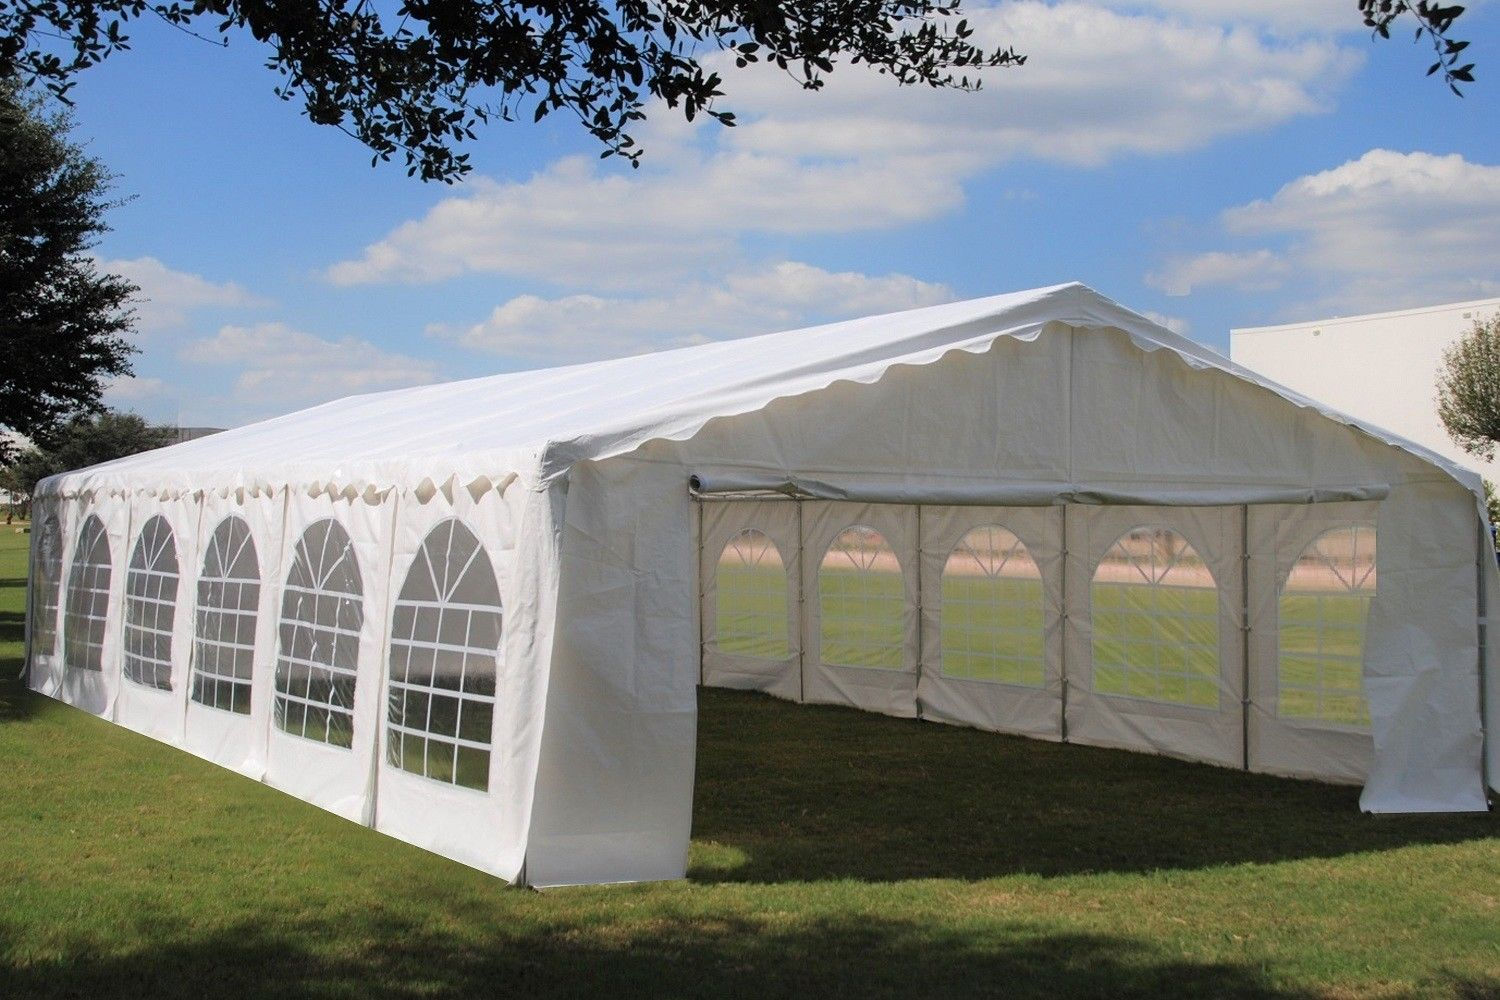 40 X 20 Budget Party Tent Canopy Gazebo White